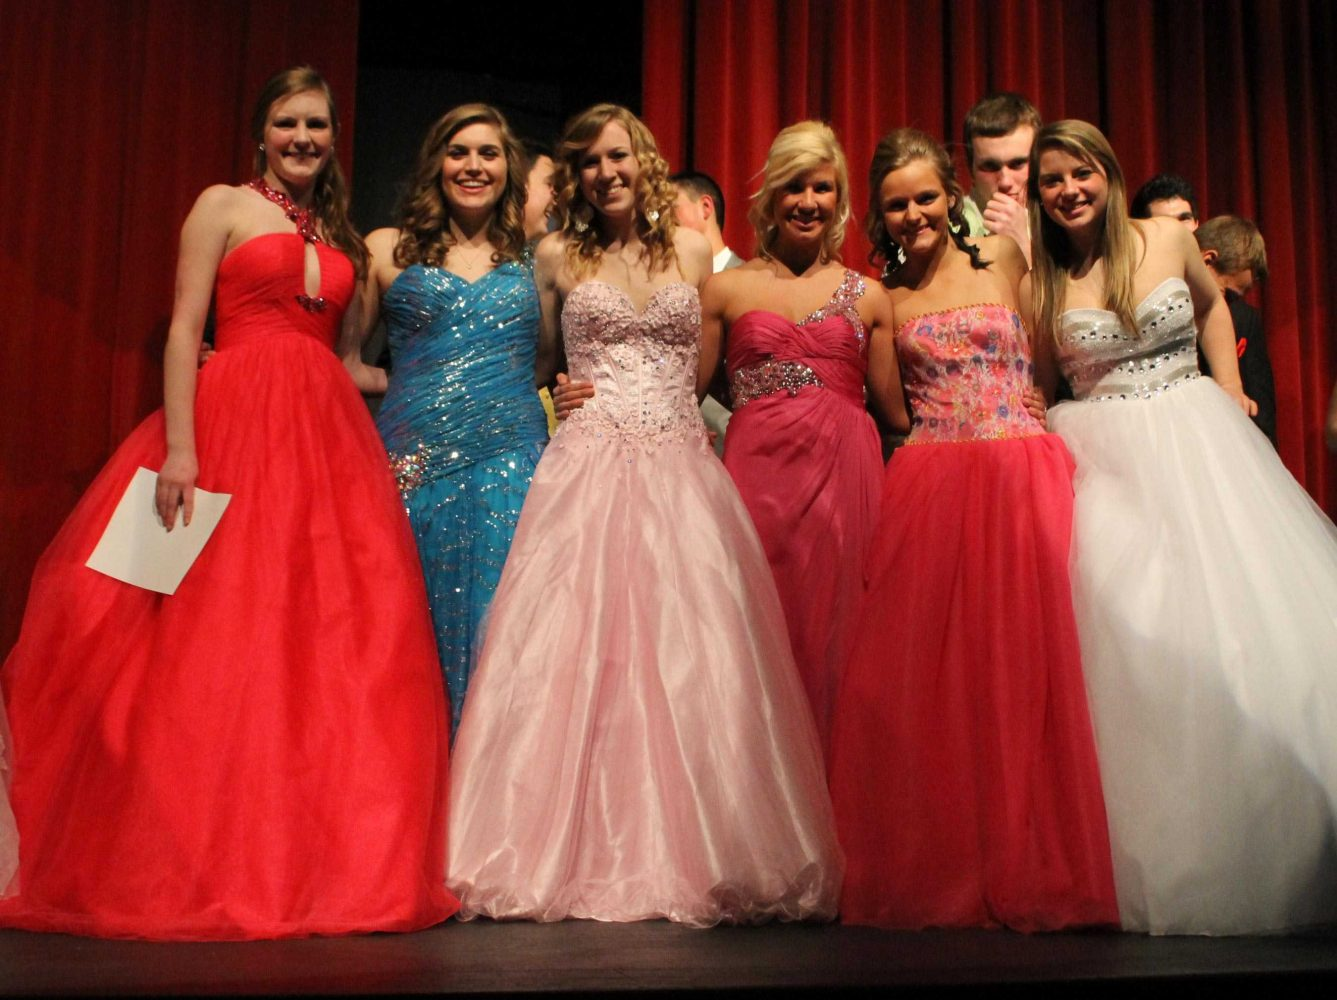 Prom Fashion show features various prom styles